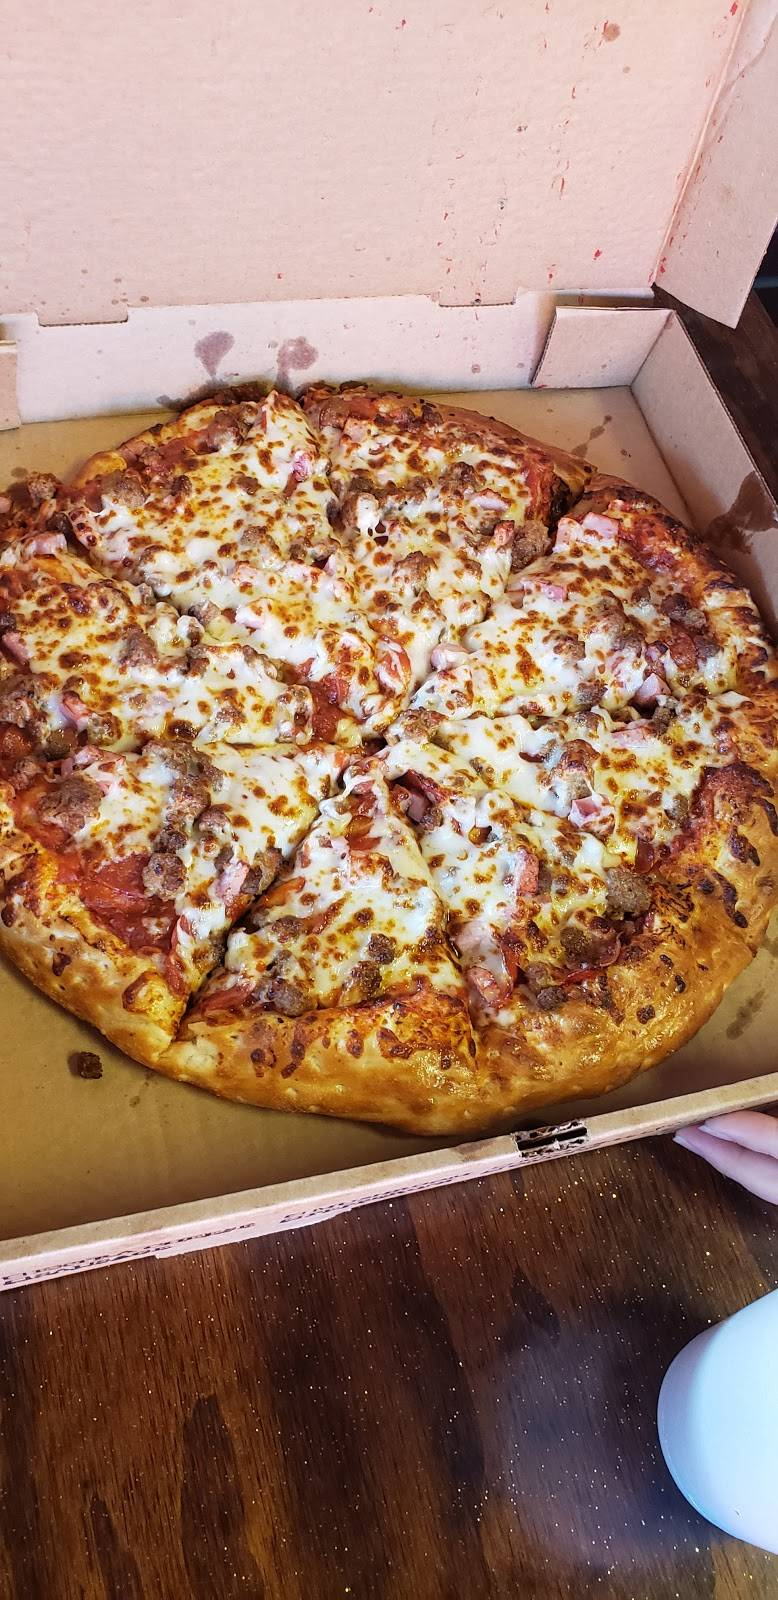 Feed Your Face Pizza Place | meal delivery | 2825 Parkway, Pigeon Forge, TN 37863, USA | 8653663210 OR +1 865-366-3210